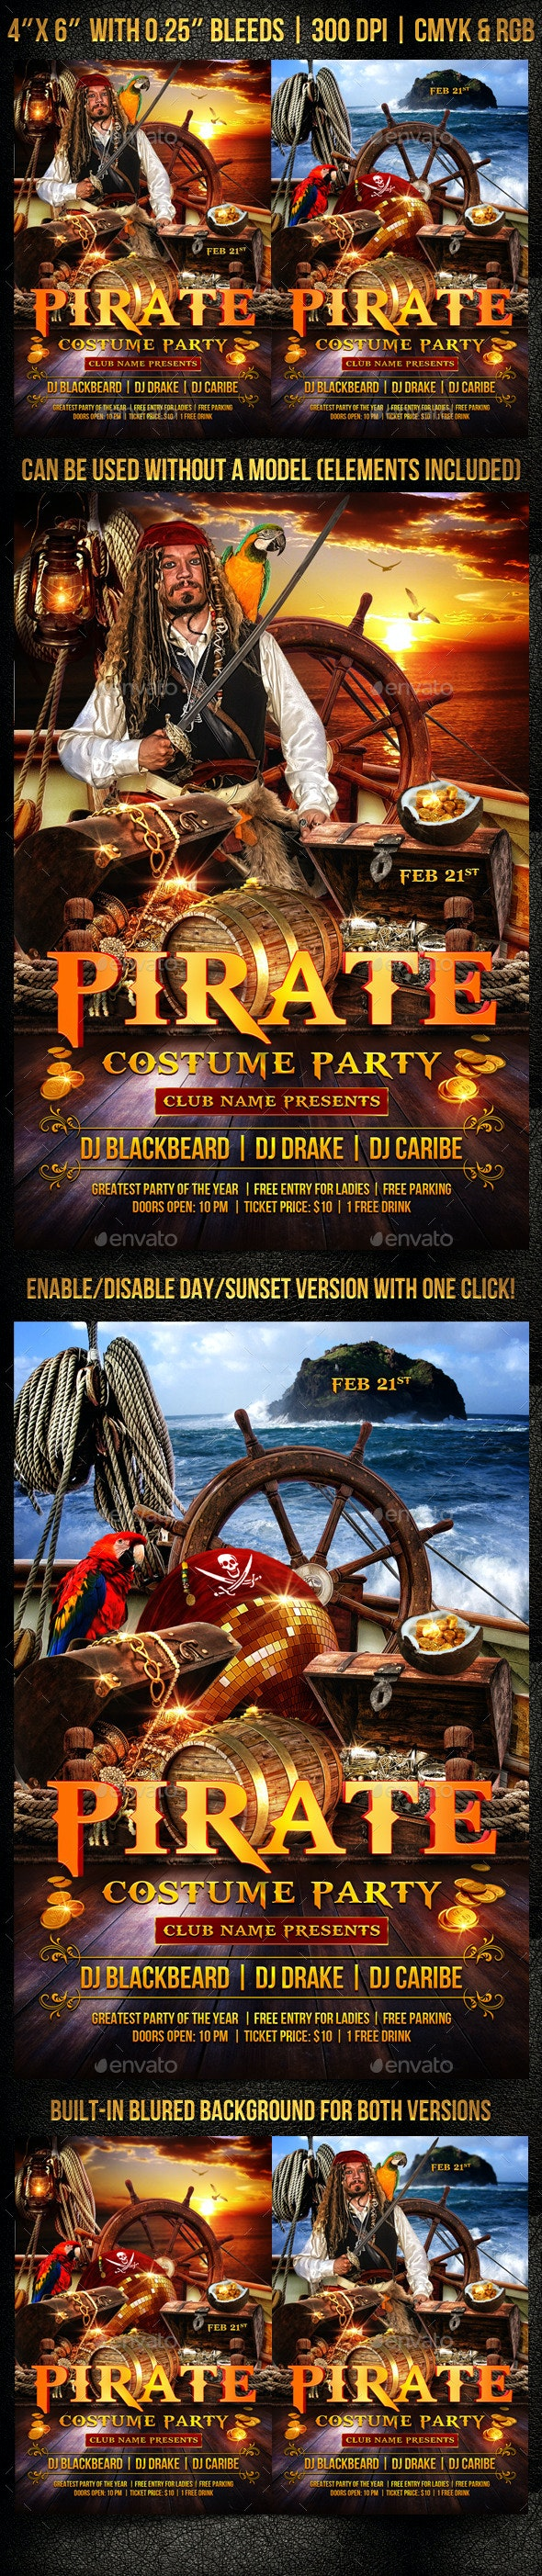 Pirate Costume Party Flyer Template - Clubs & Parties Events